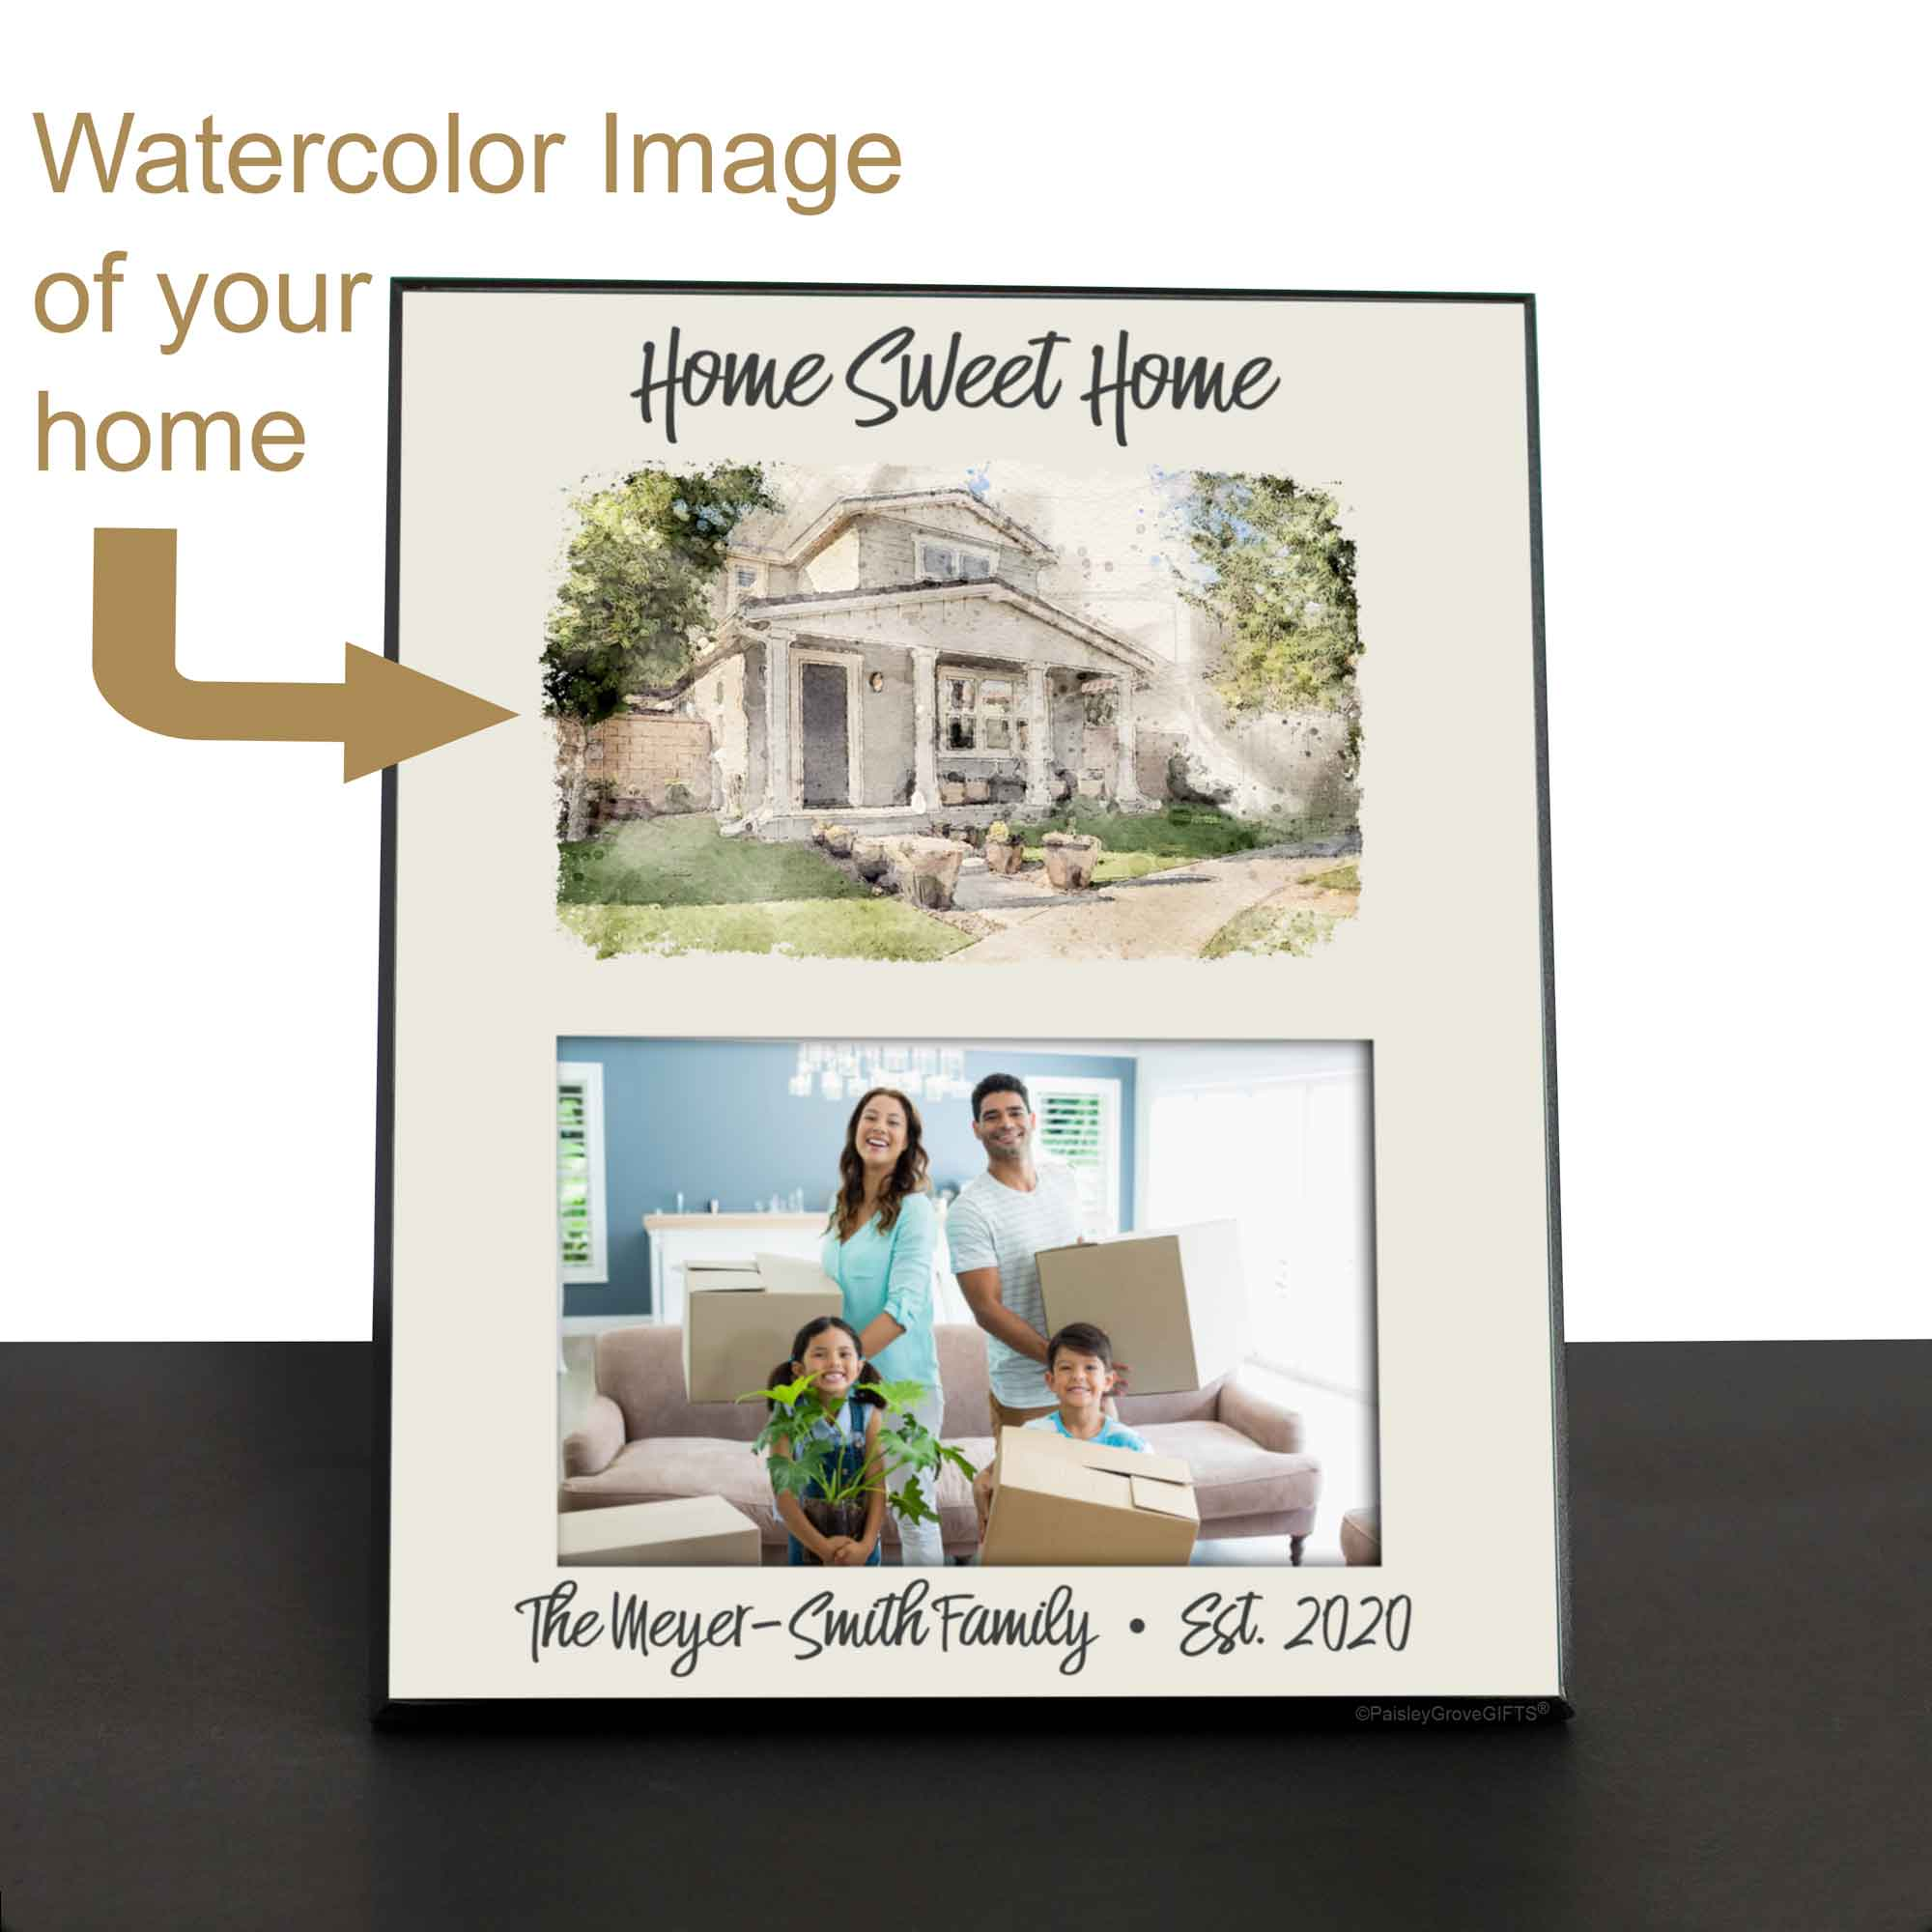 CopyrightPaisleyGroveGIFTS S250b Custom Watercolor Painting of your house on frame Personalized with Established year